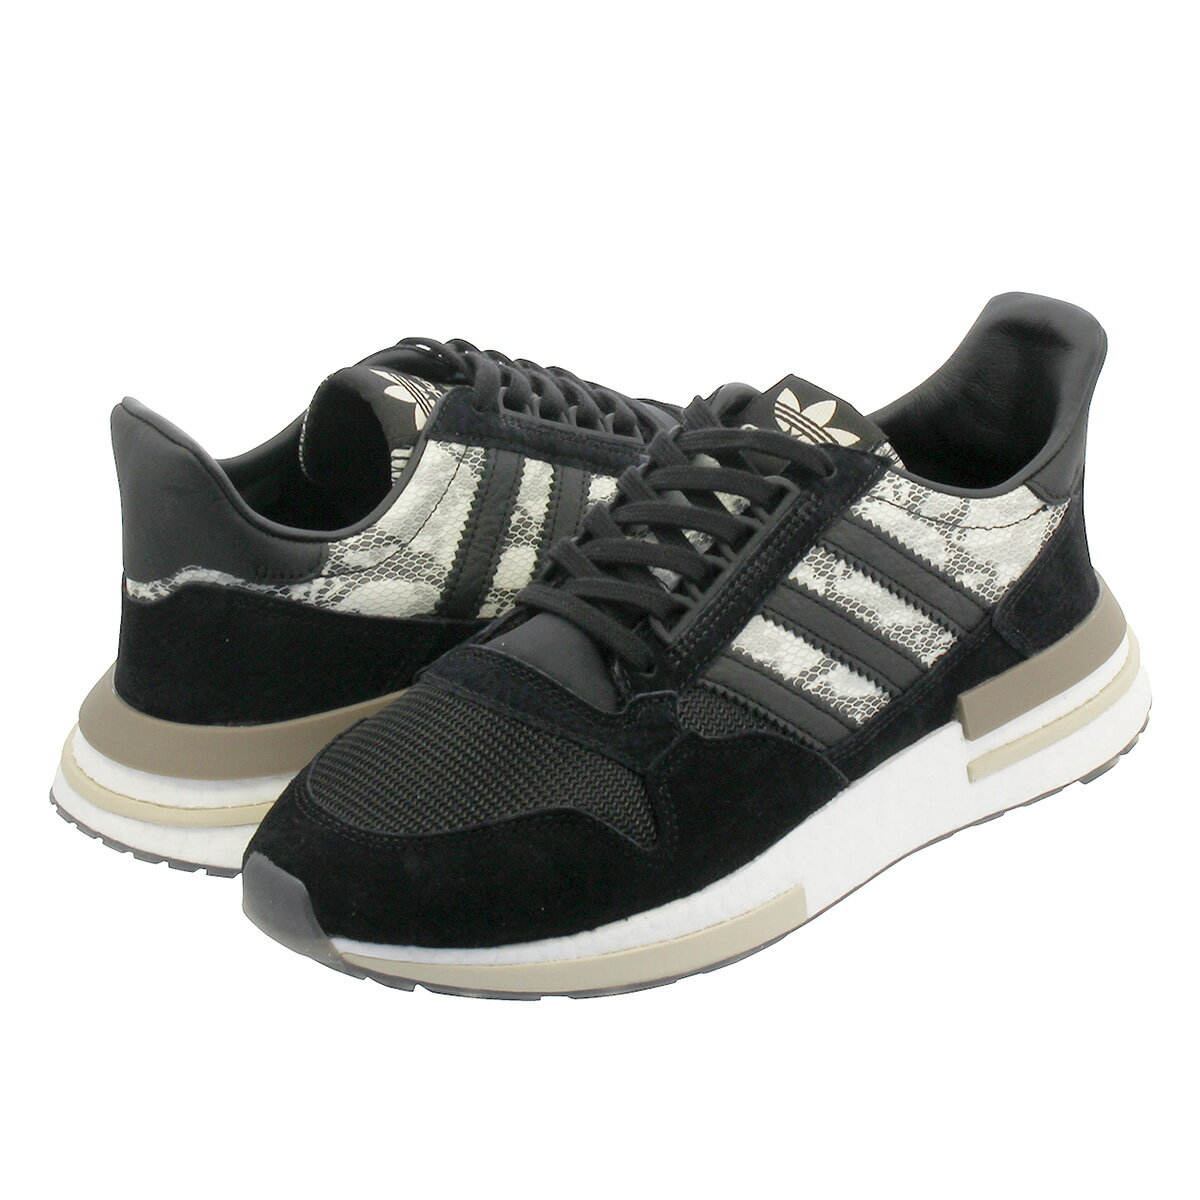 メンズ靴, スニーカー SALE adidas ZX 500 RM ZX 500 RM CORE BLACKCORE BLACKRUNNING WHITE bd7924